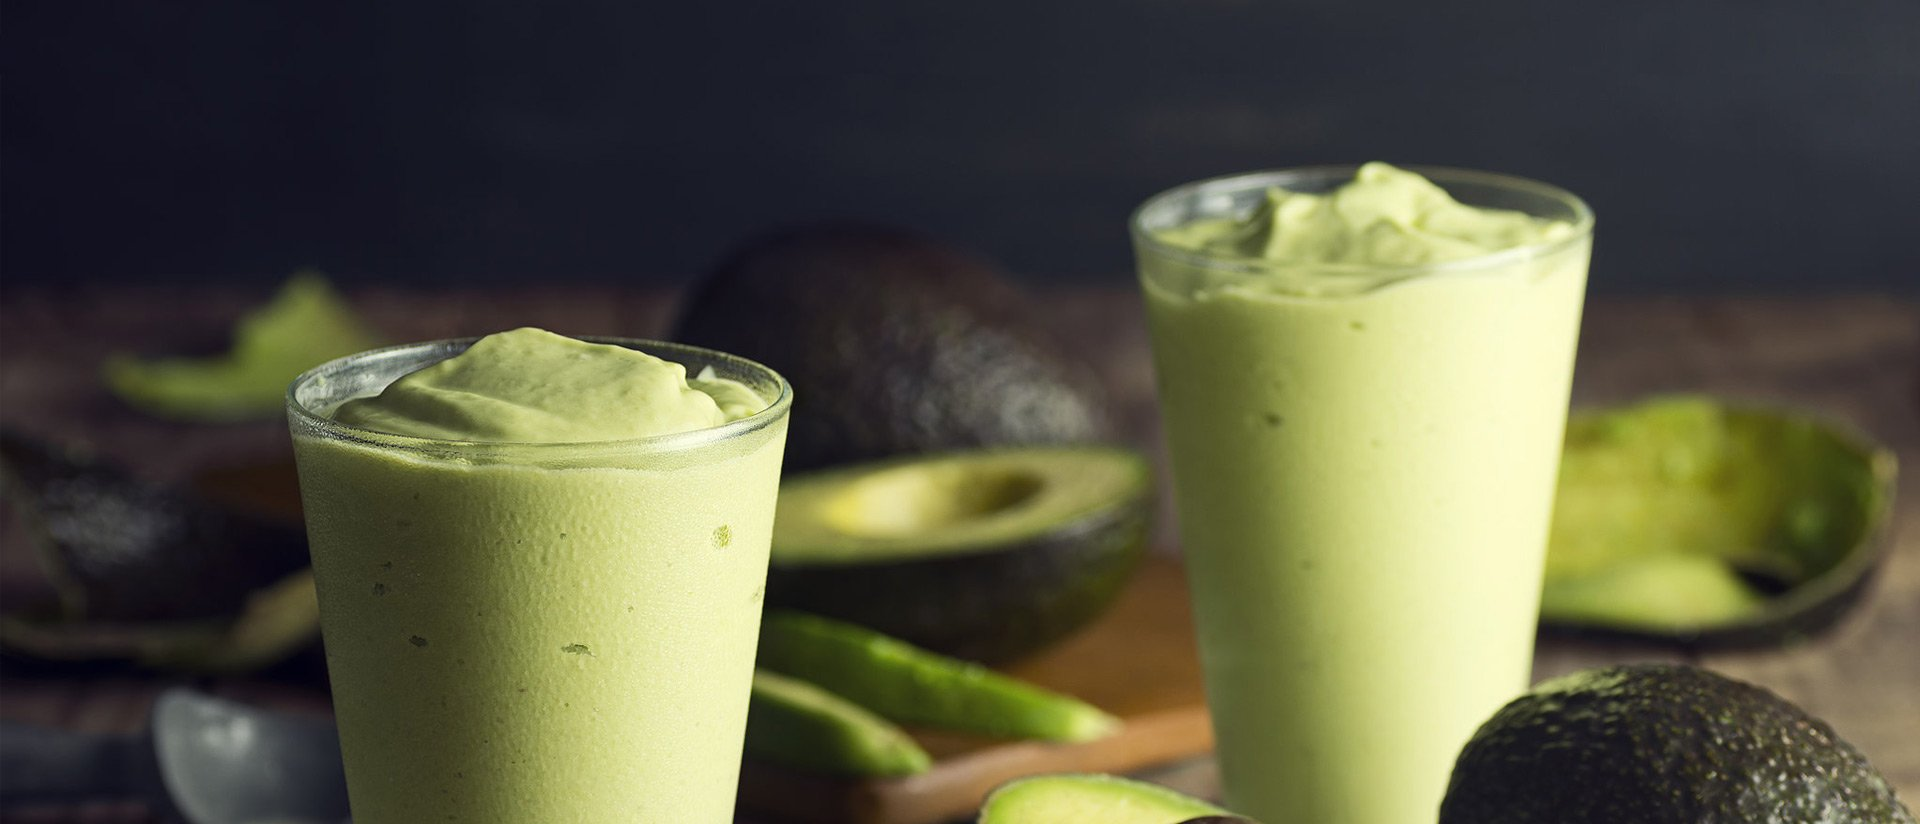 Karela & Avocado Smoothie